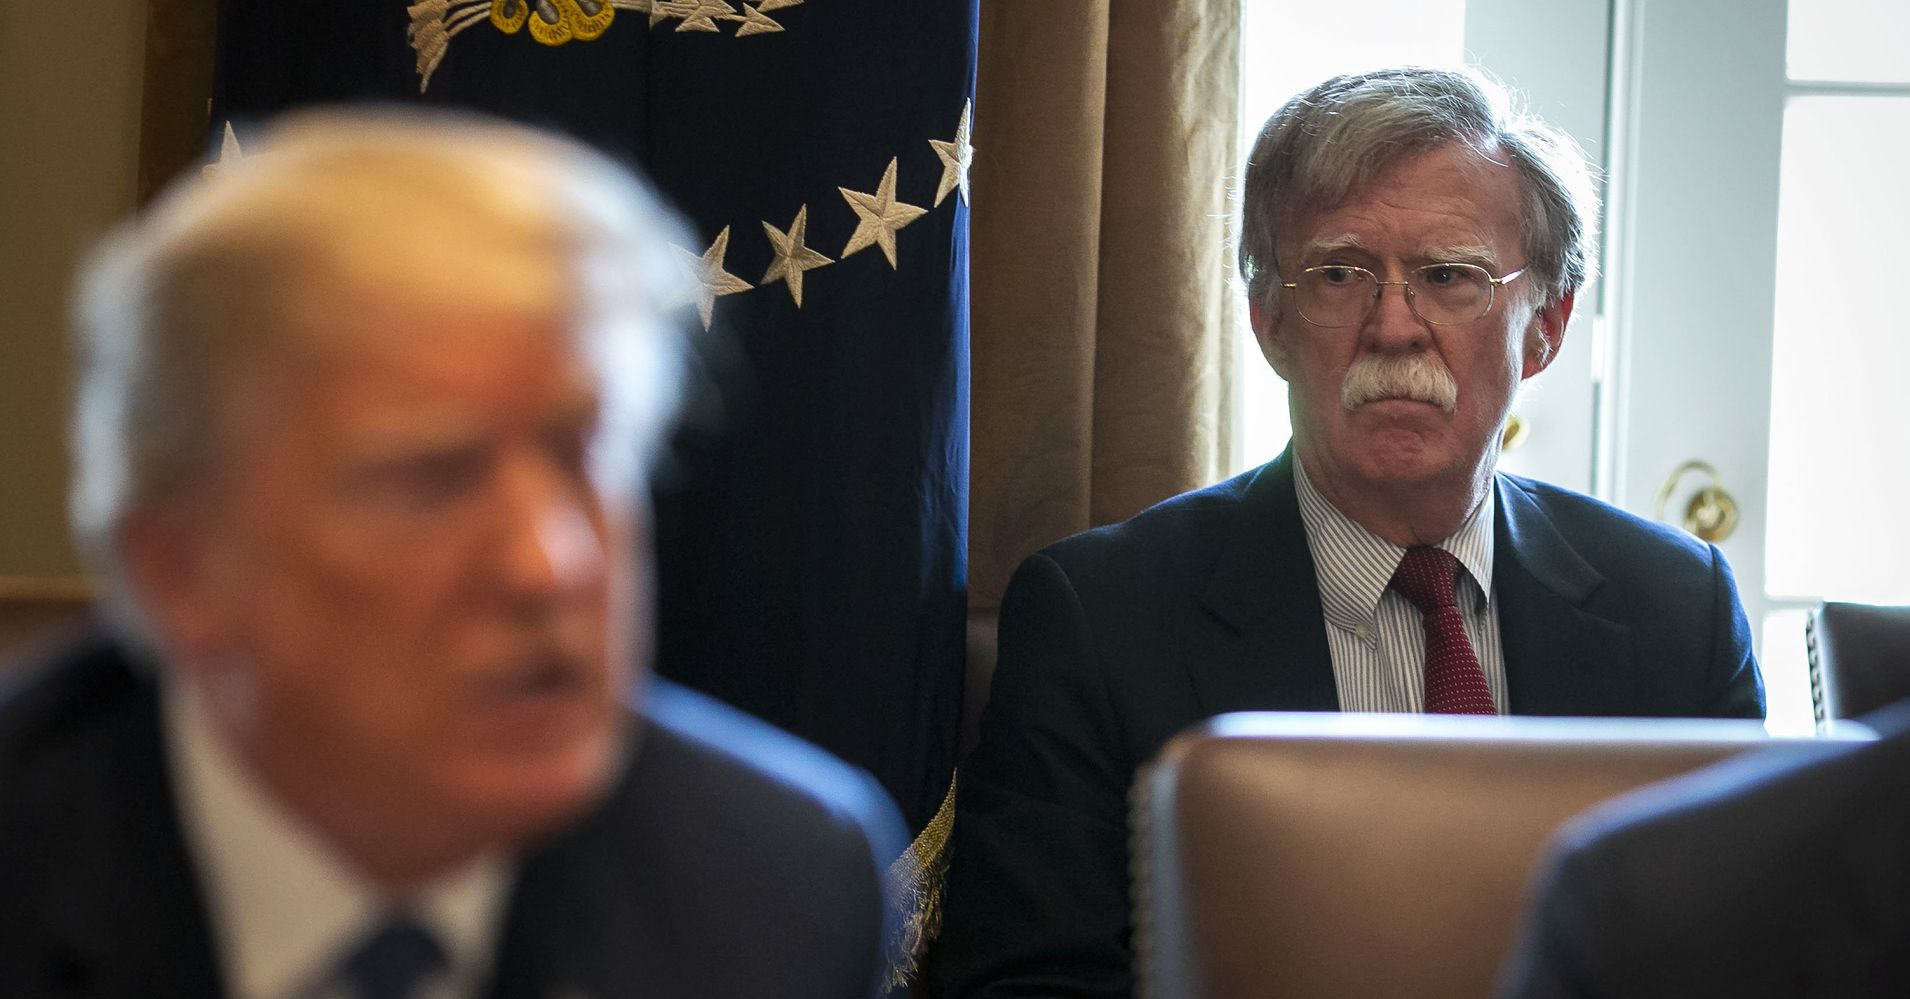 Bolton Arrives At White House, And National Security Staff Start Leaving | HuffPost